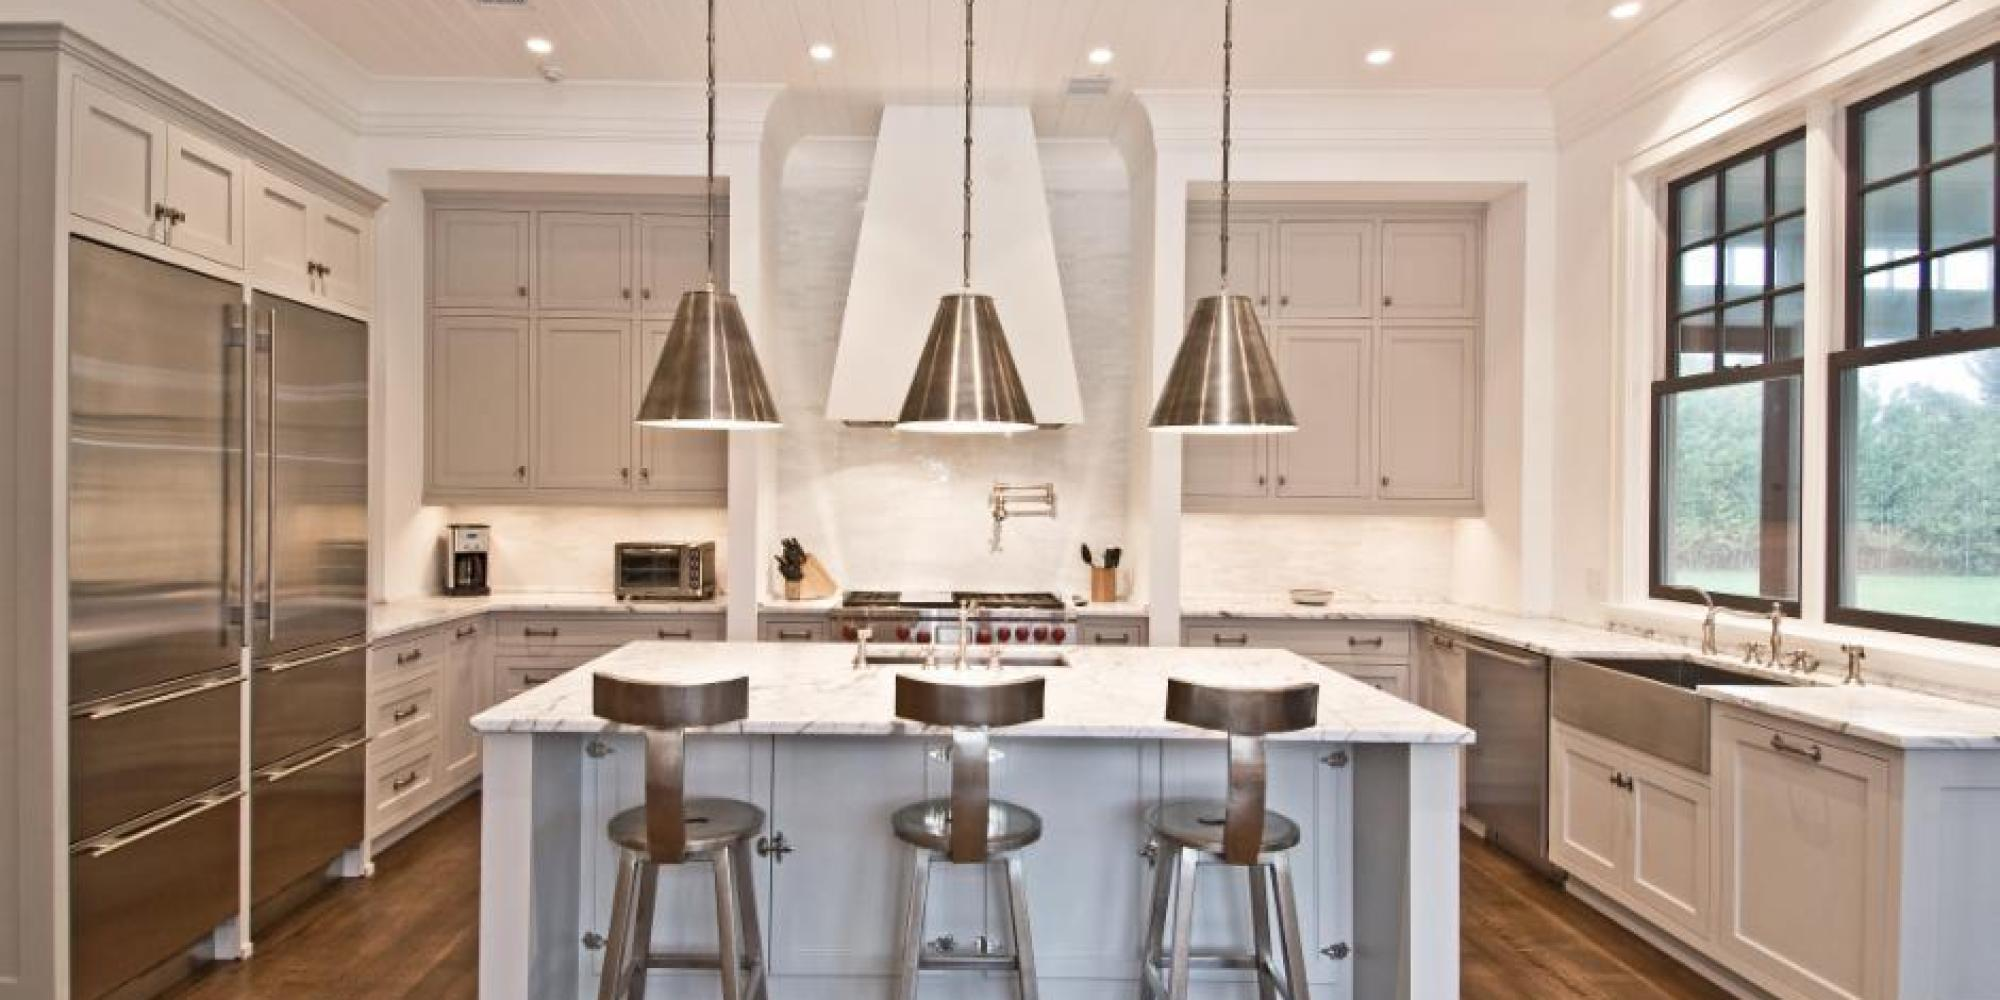 The Best Paint Colors For Every Type Of Kitchen HuffPost - Best wall color for white kitchen cabinets